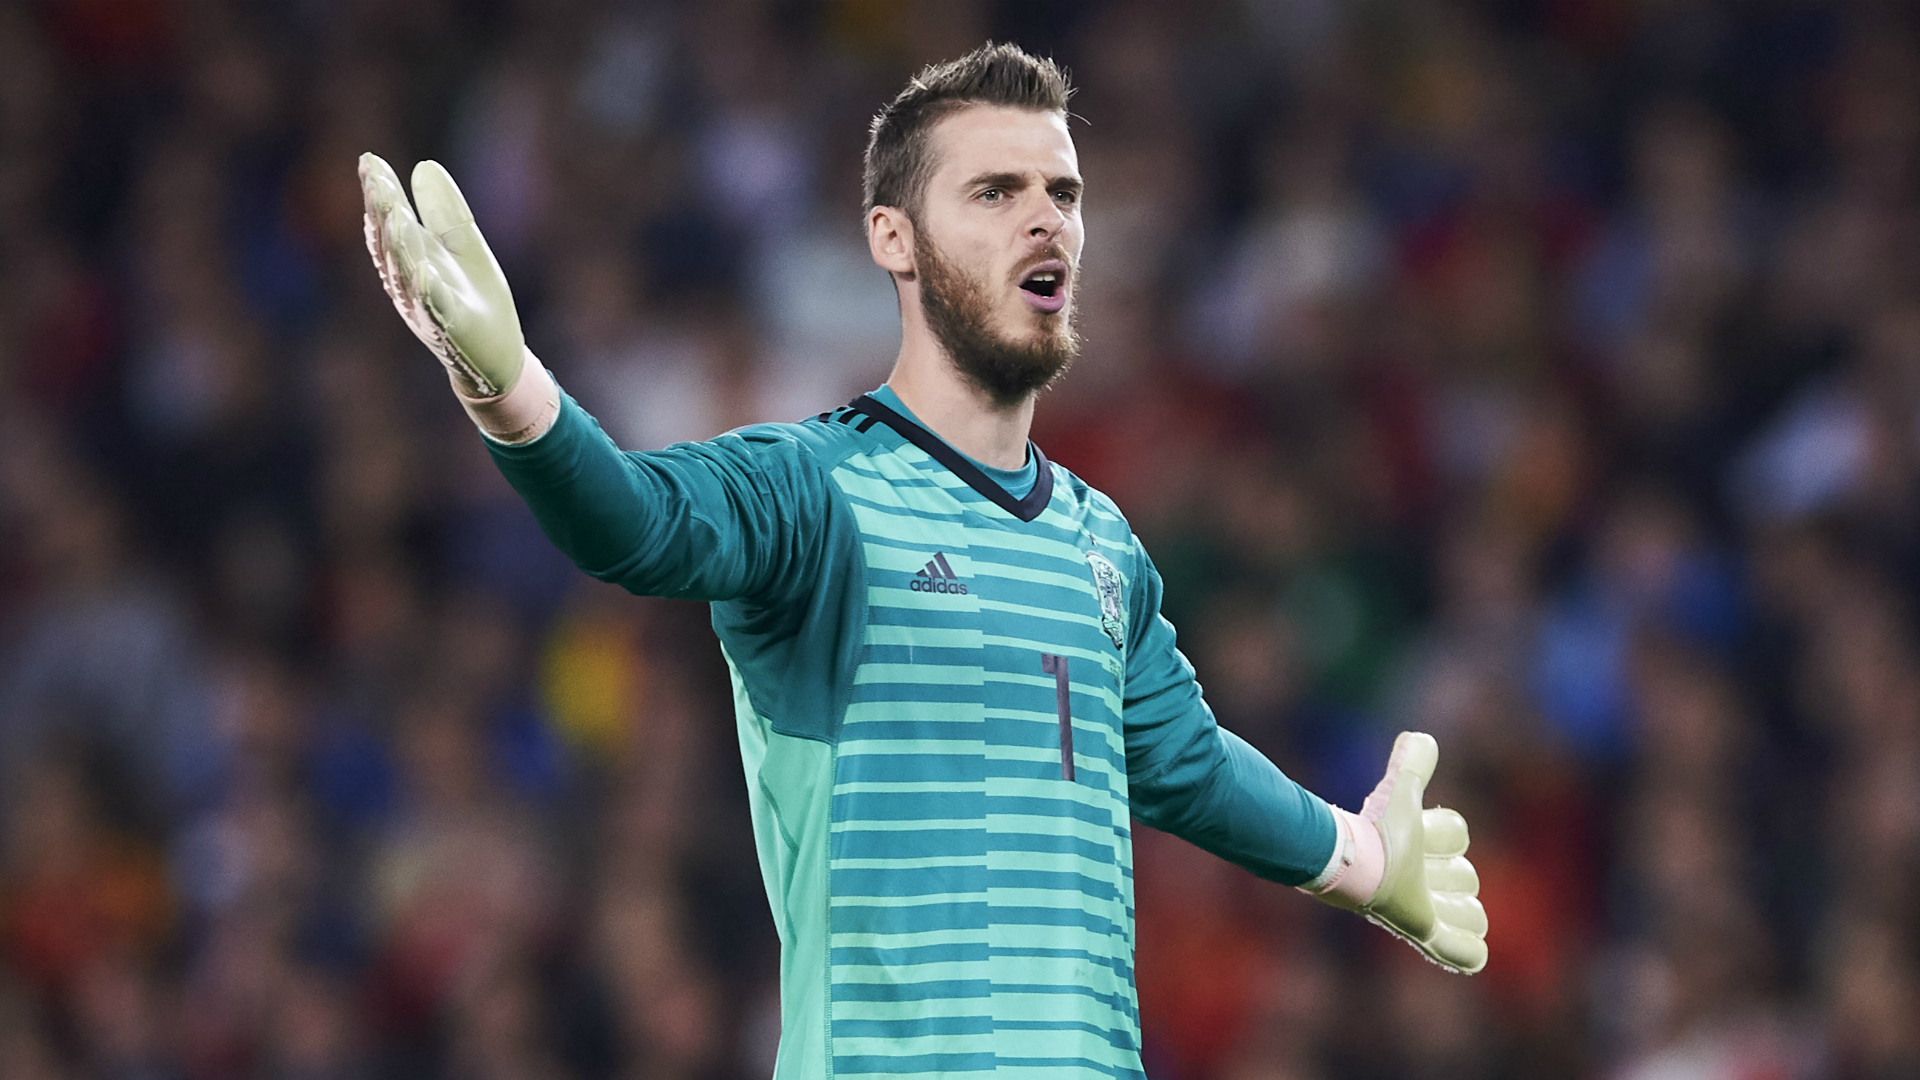 Spain goalkeeper David de Gea should not be singled out for criticism, according to Luis Enrique.